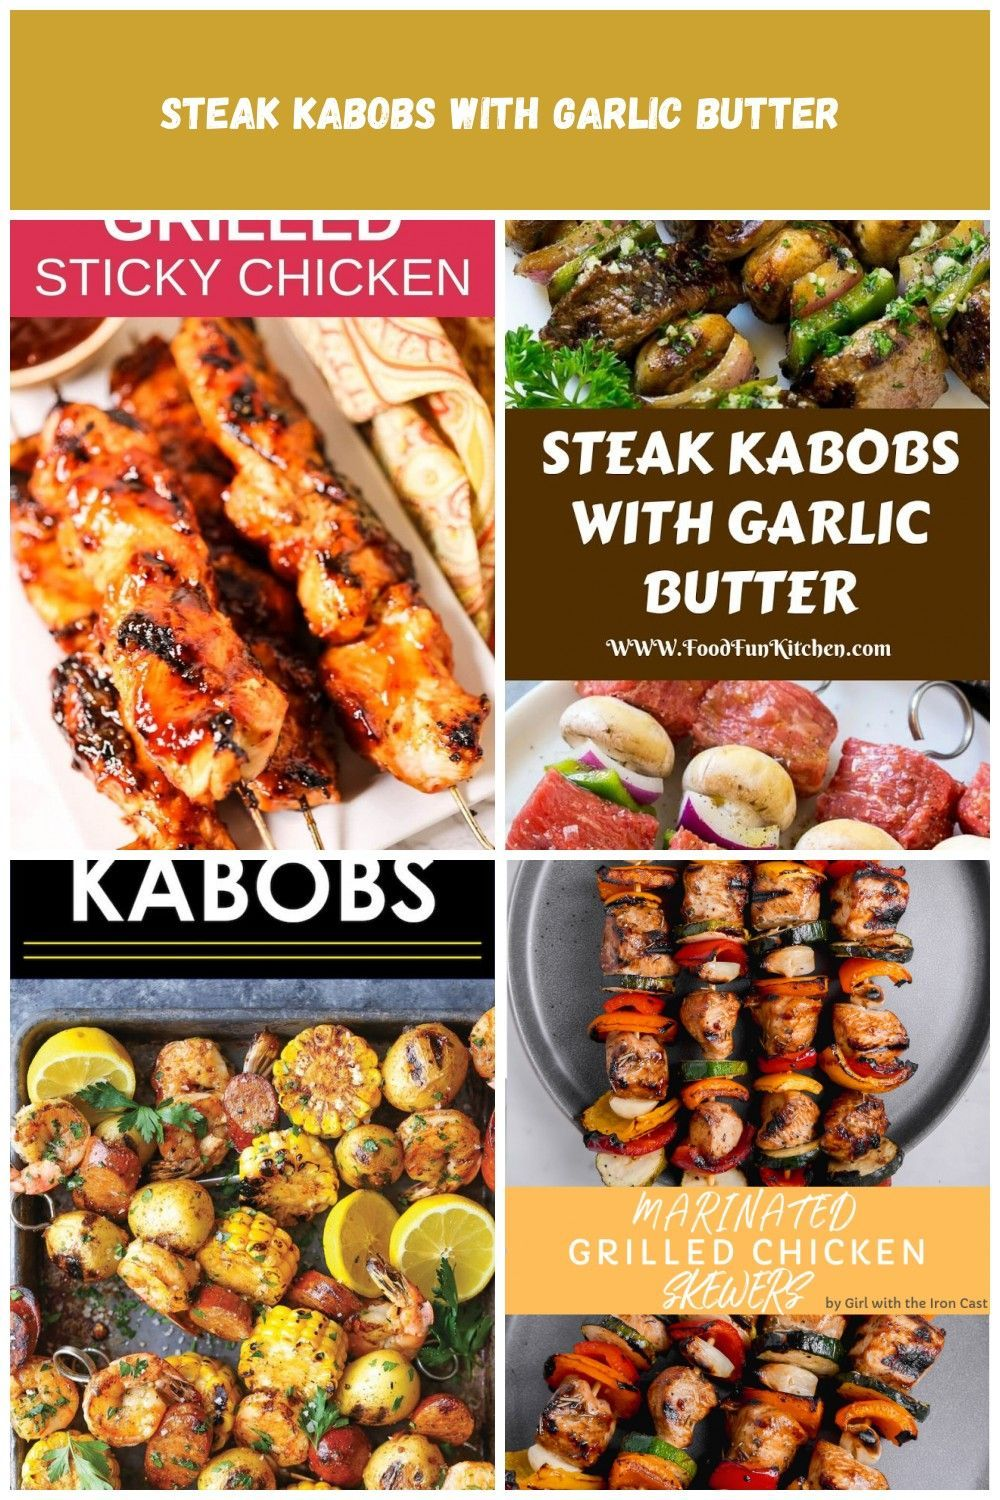 These grilled Sticky Chicken Kabobs are a flavor explosion and the sauce gets sticky & caramelized. It's my favorite grilled chicken breast marinade. They are the perfect summer-time food! Chicken kabob marinade recipe, chicken kabobs on the grill, easy summer recipes, summer party recipes, summer grilling recipes grilling recipes Kabobs #chickenkabobmarinade These grilled Sticky Chicken Kabobs are a flavor explosion and the sauce gets sticky & caramelized. It's my favorite grilled chicken b #chickenkabobmarinade